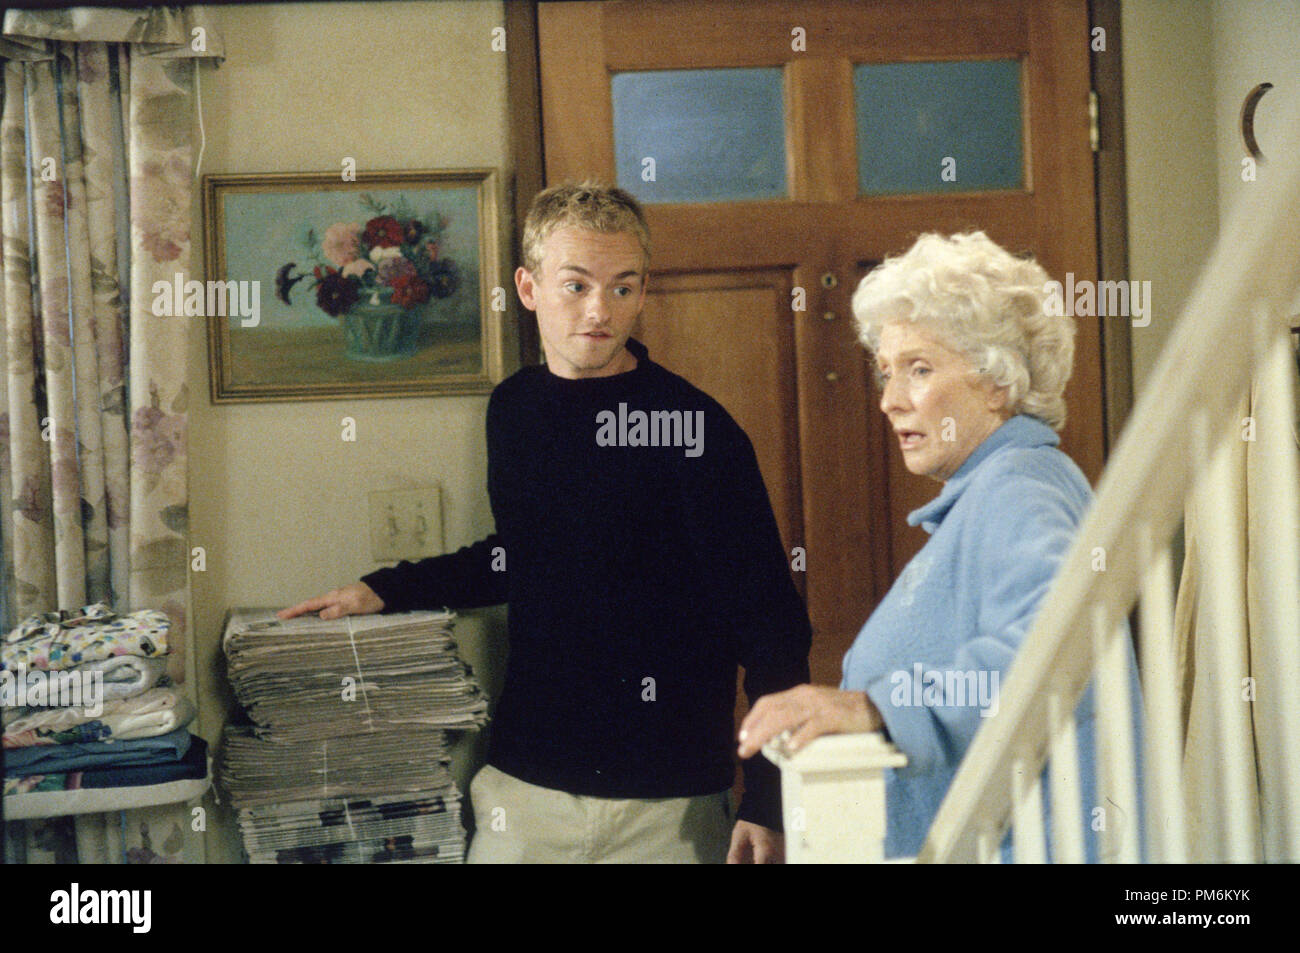 Malcolm In The Middle Christmas.Film Still Publicity Still From Malcolm In The Middle